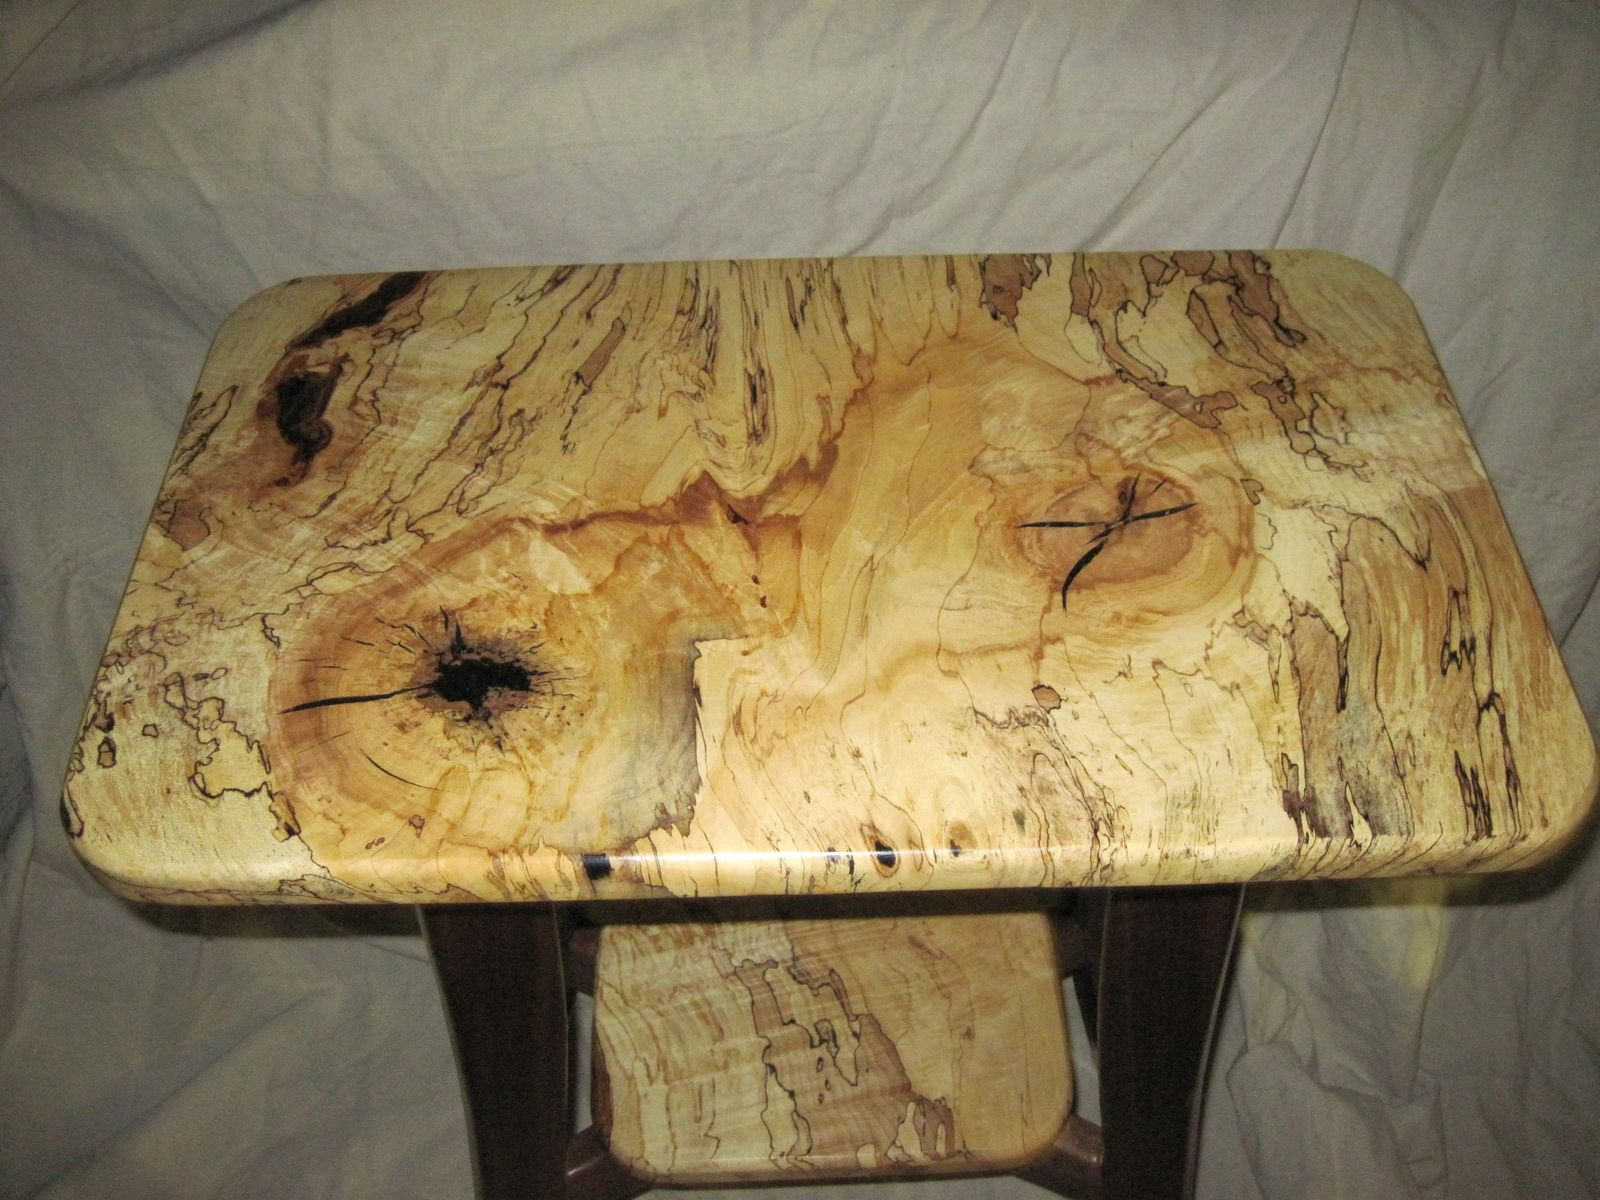 Handmade Spalted Maple Table By Everlasting Woods